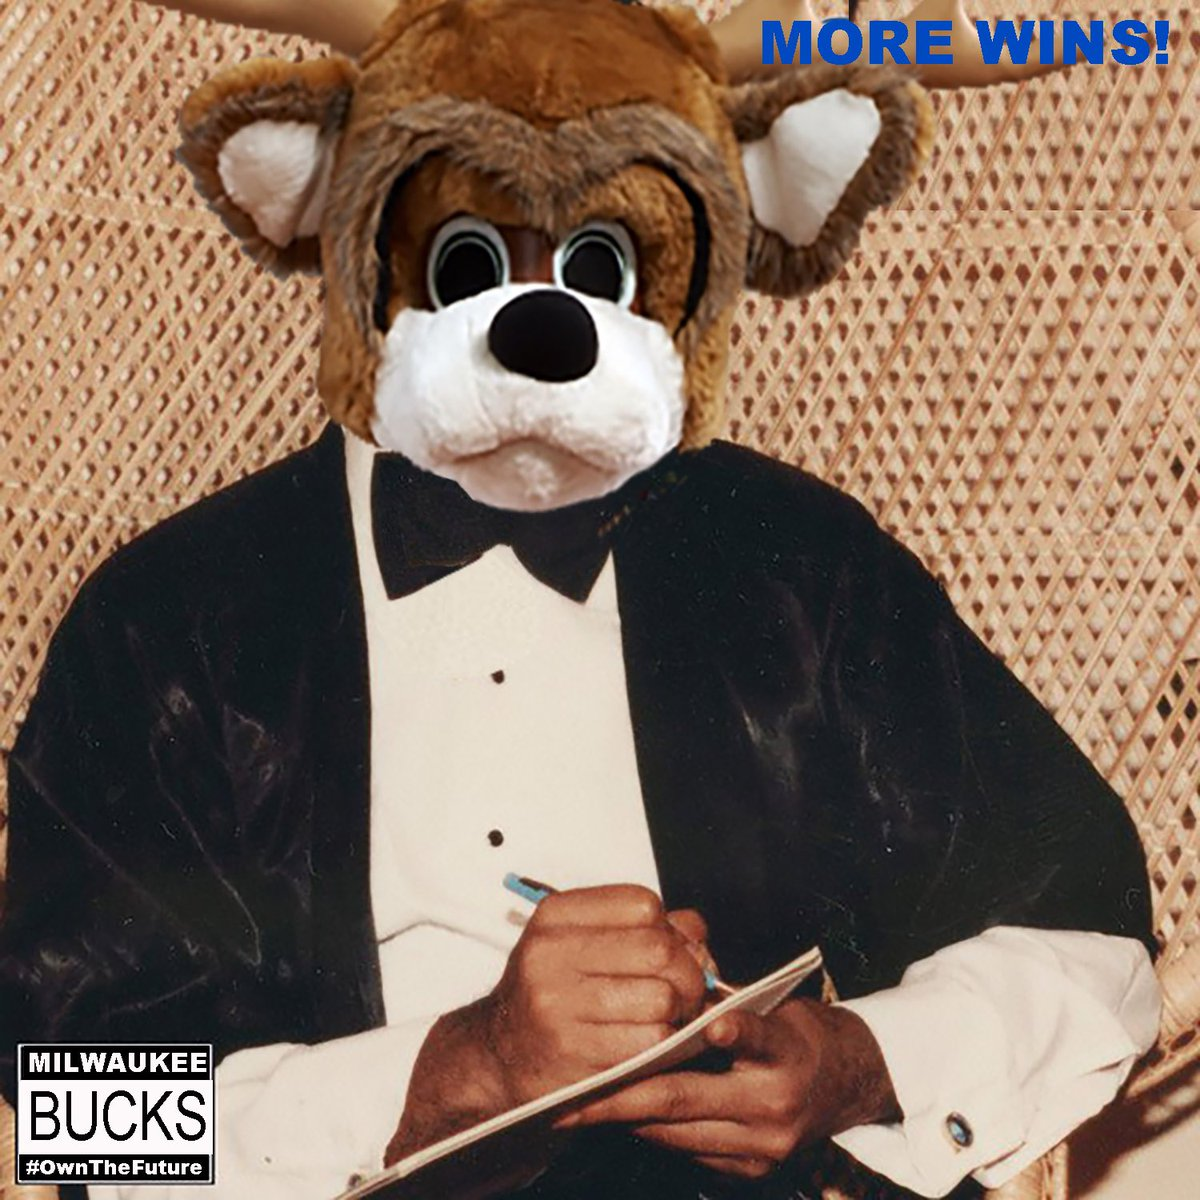 Bucks Win! #MoreLife #Drake https://t.co/o6fozq9vjE